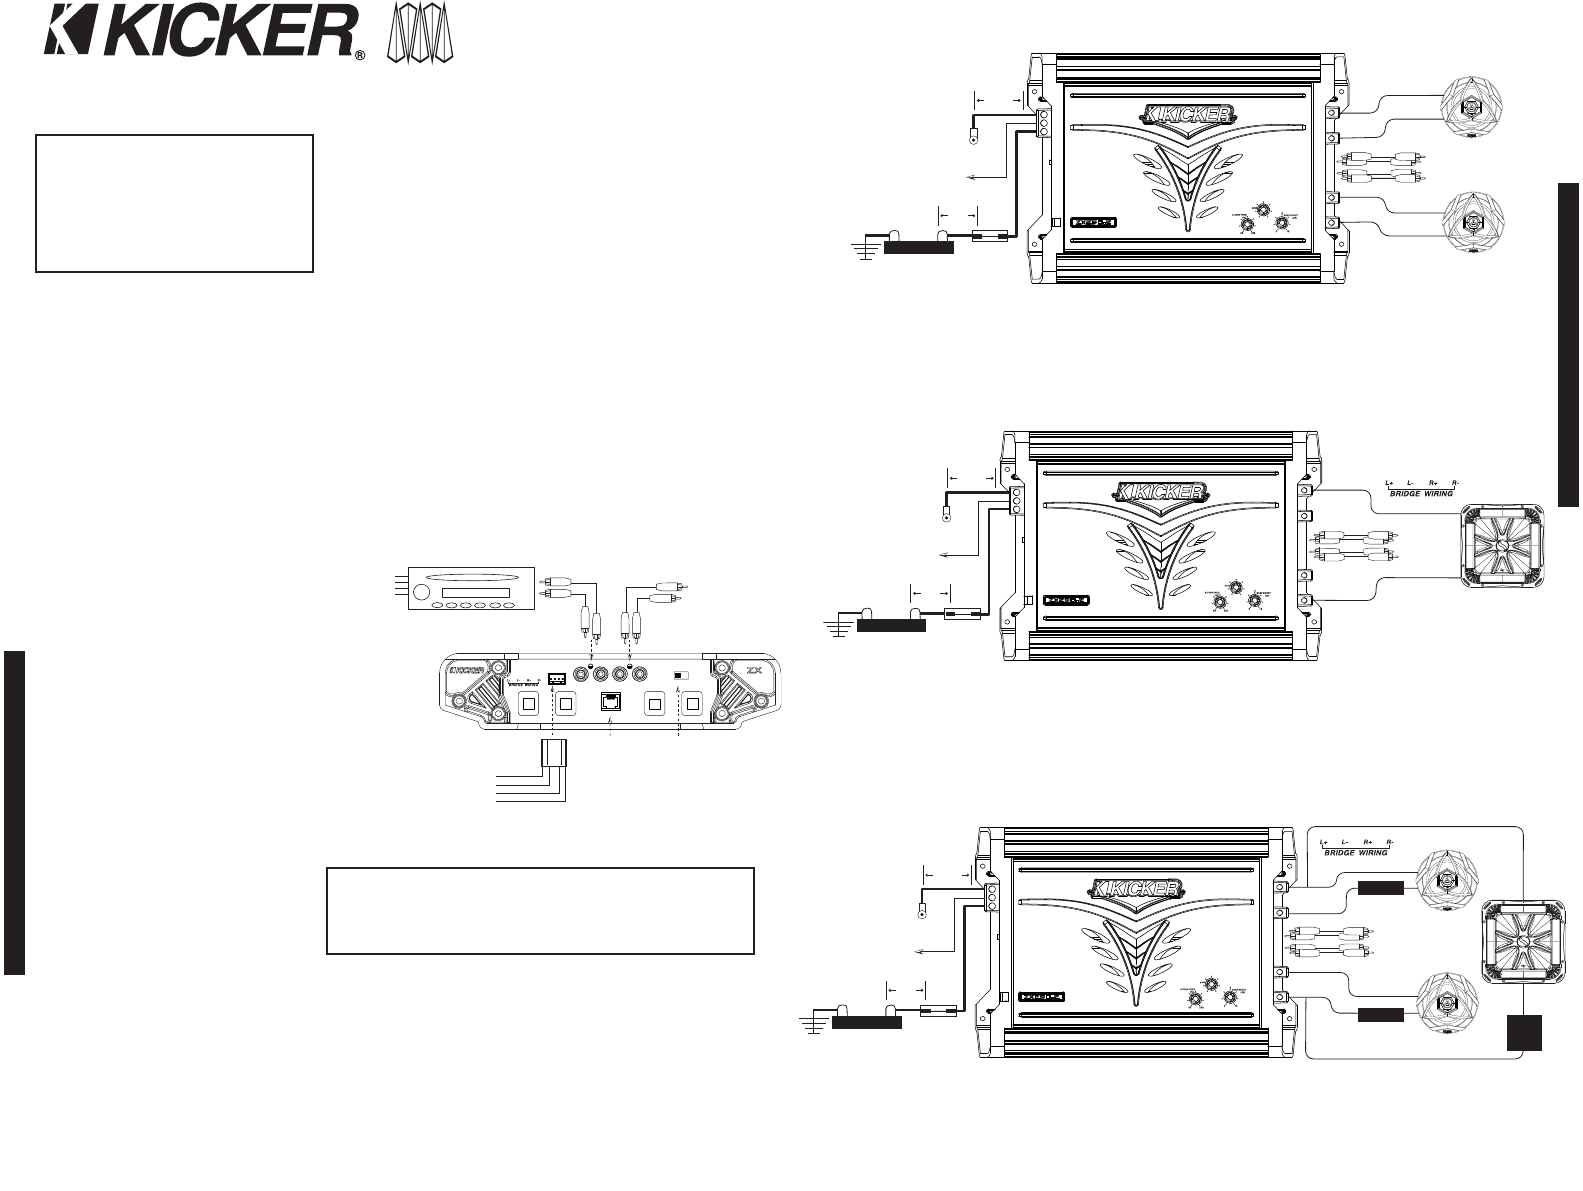 a81eae5c fe97 44a6 8b91 25020d55c55a bg2 page 2 of kicker stereo amplifier zx850 2 user guide Kicker Cx300.1 at edmiracle.co